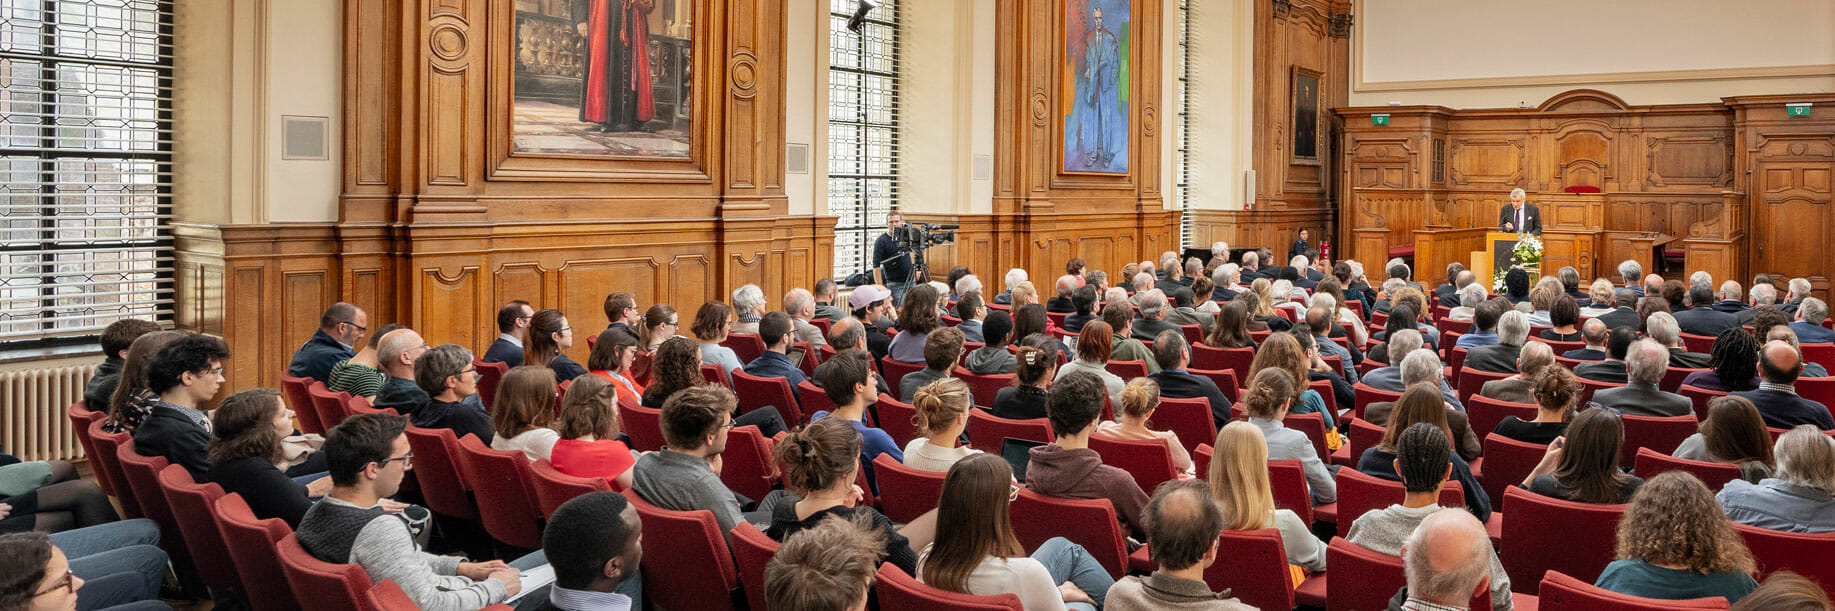 KU Leuven Short Stay Visiting Grants For Moroccan and Palestinian Postdoctoral Researchers on Global Development in Belgium 2021